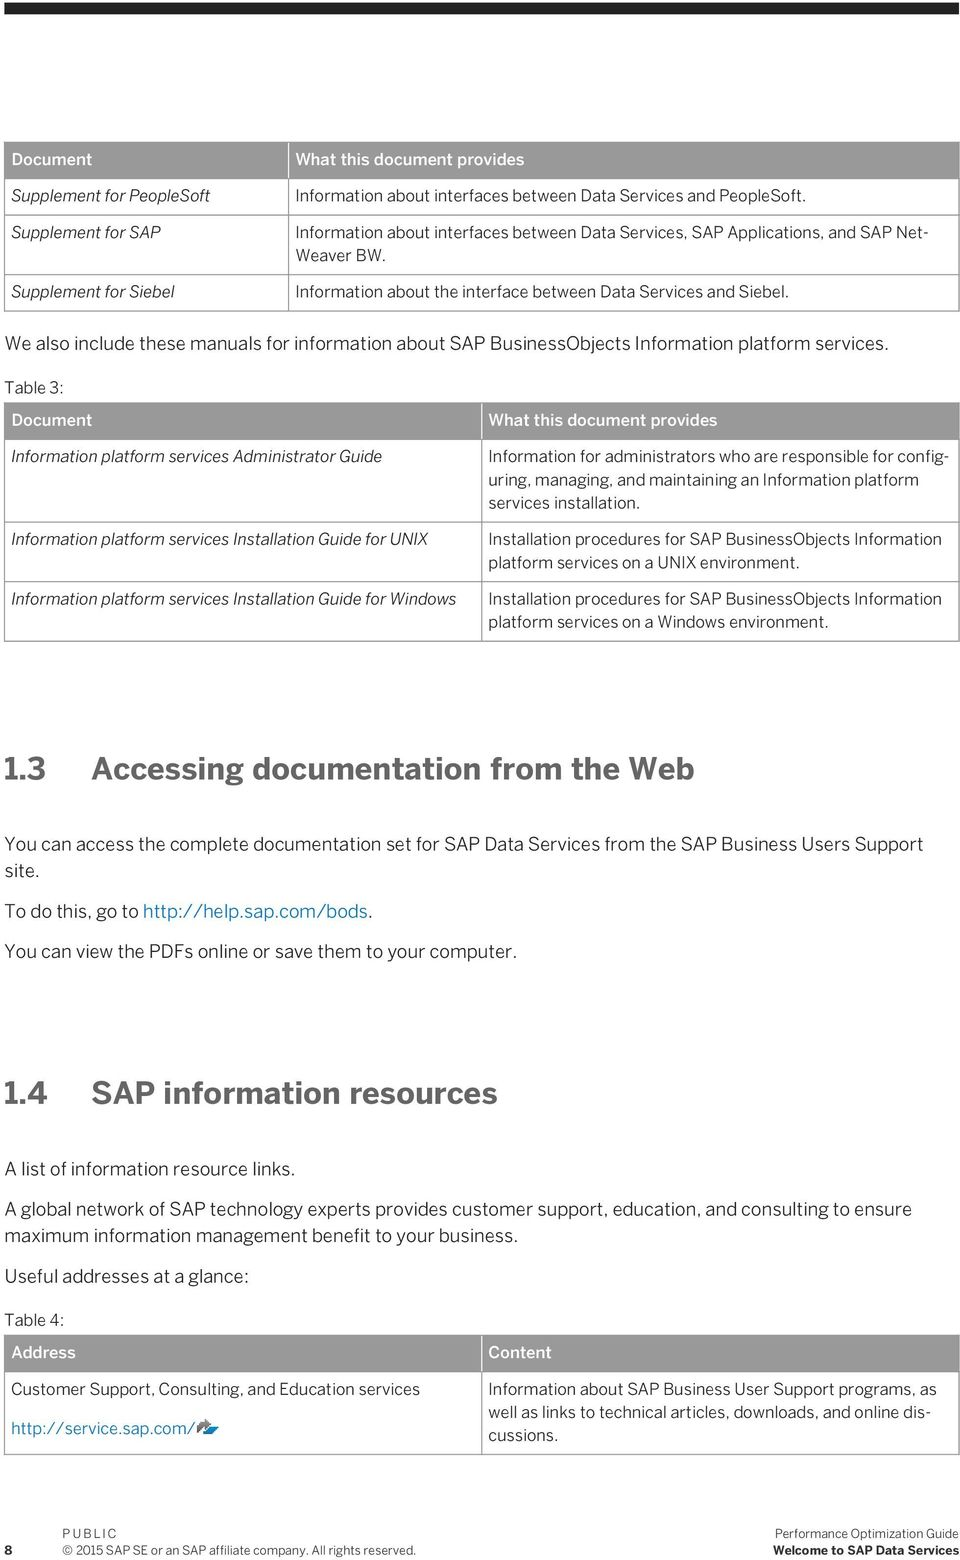 We also include these manuals for information about SAP BusinessObjects Information platform services.